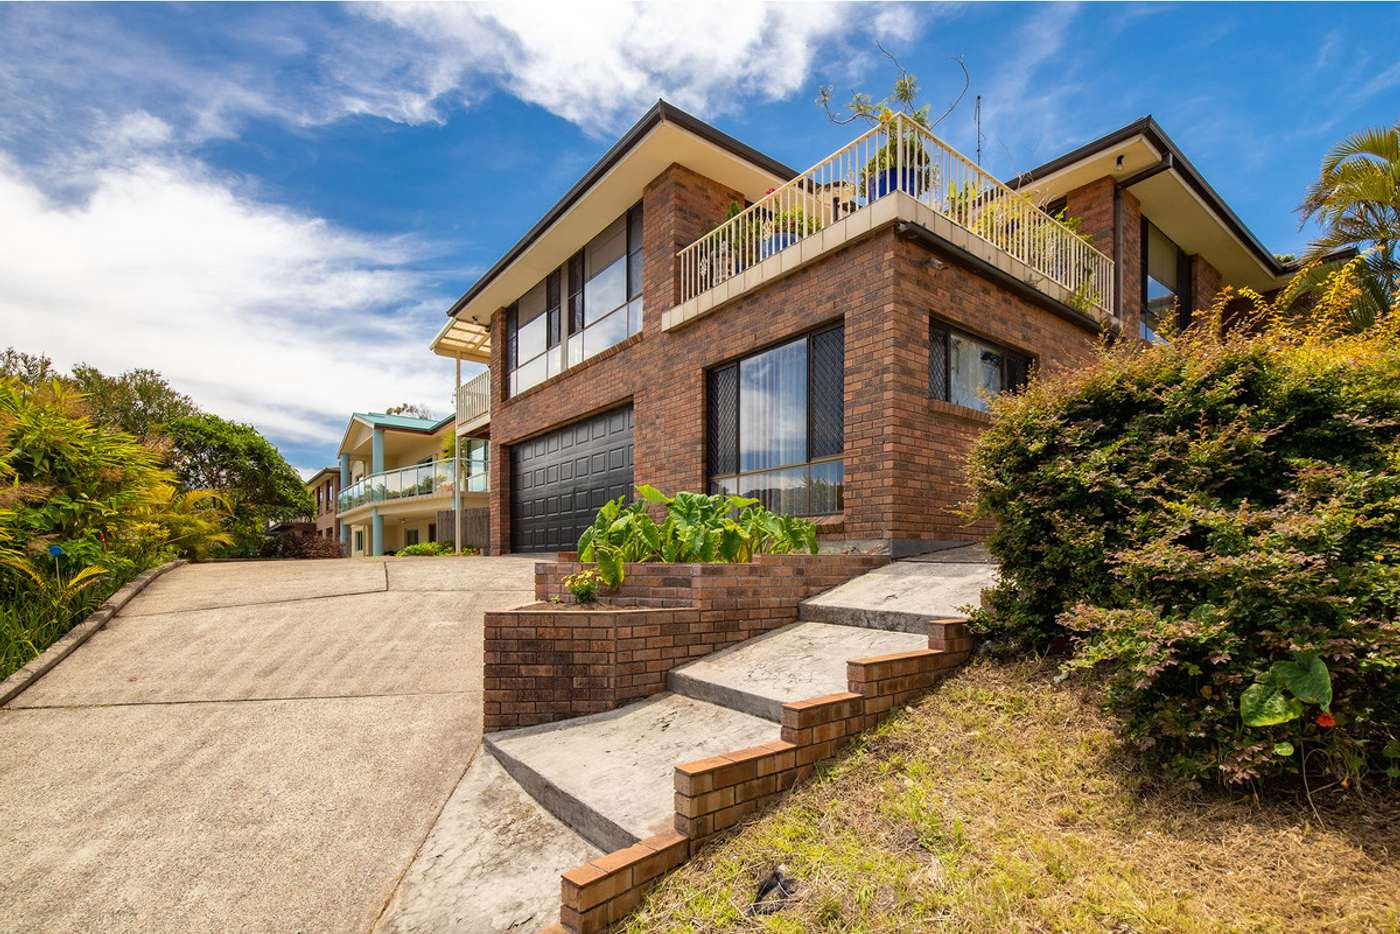 Main view of Homely house listing, 53 Pioneer Drive, Forster NSW 2428